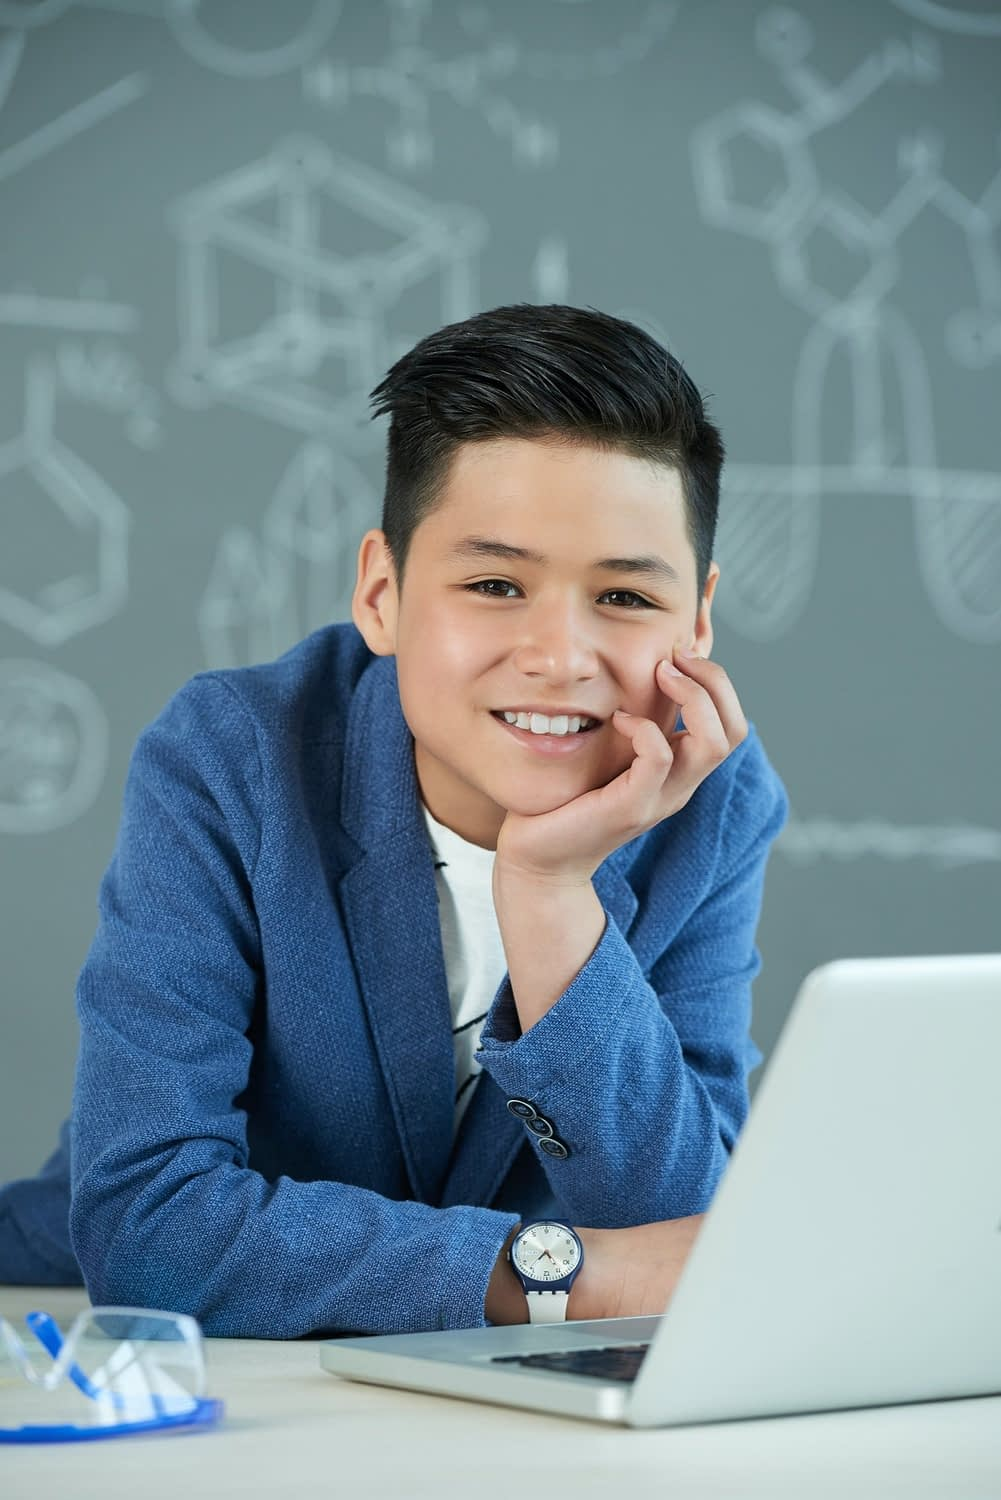 Asian Student with Wide Smile